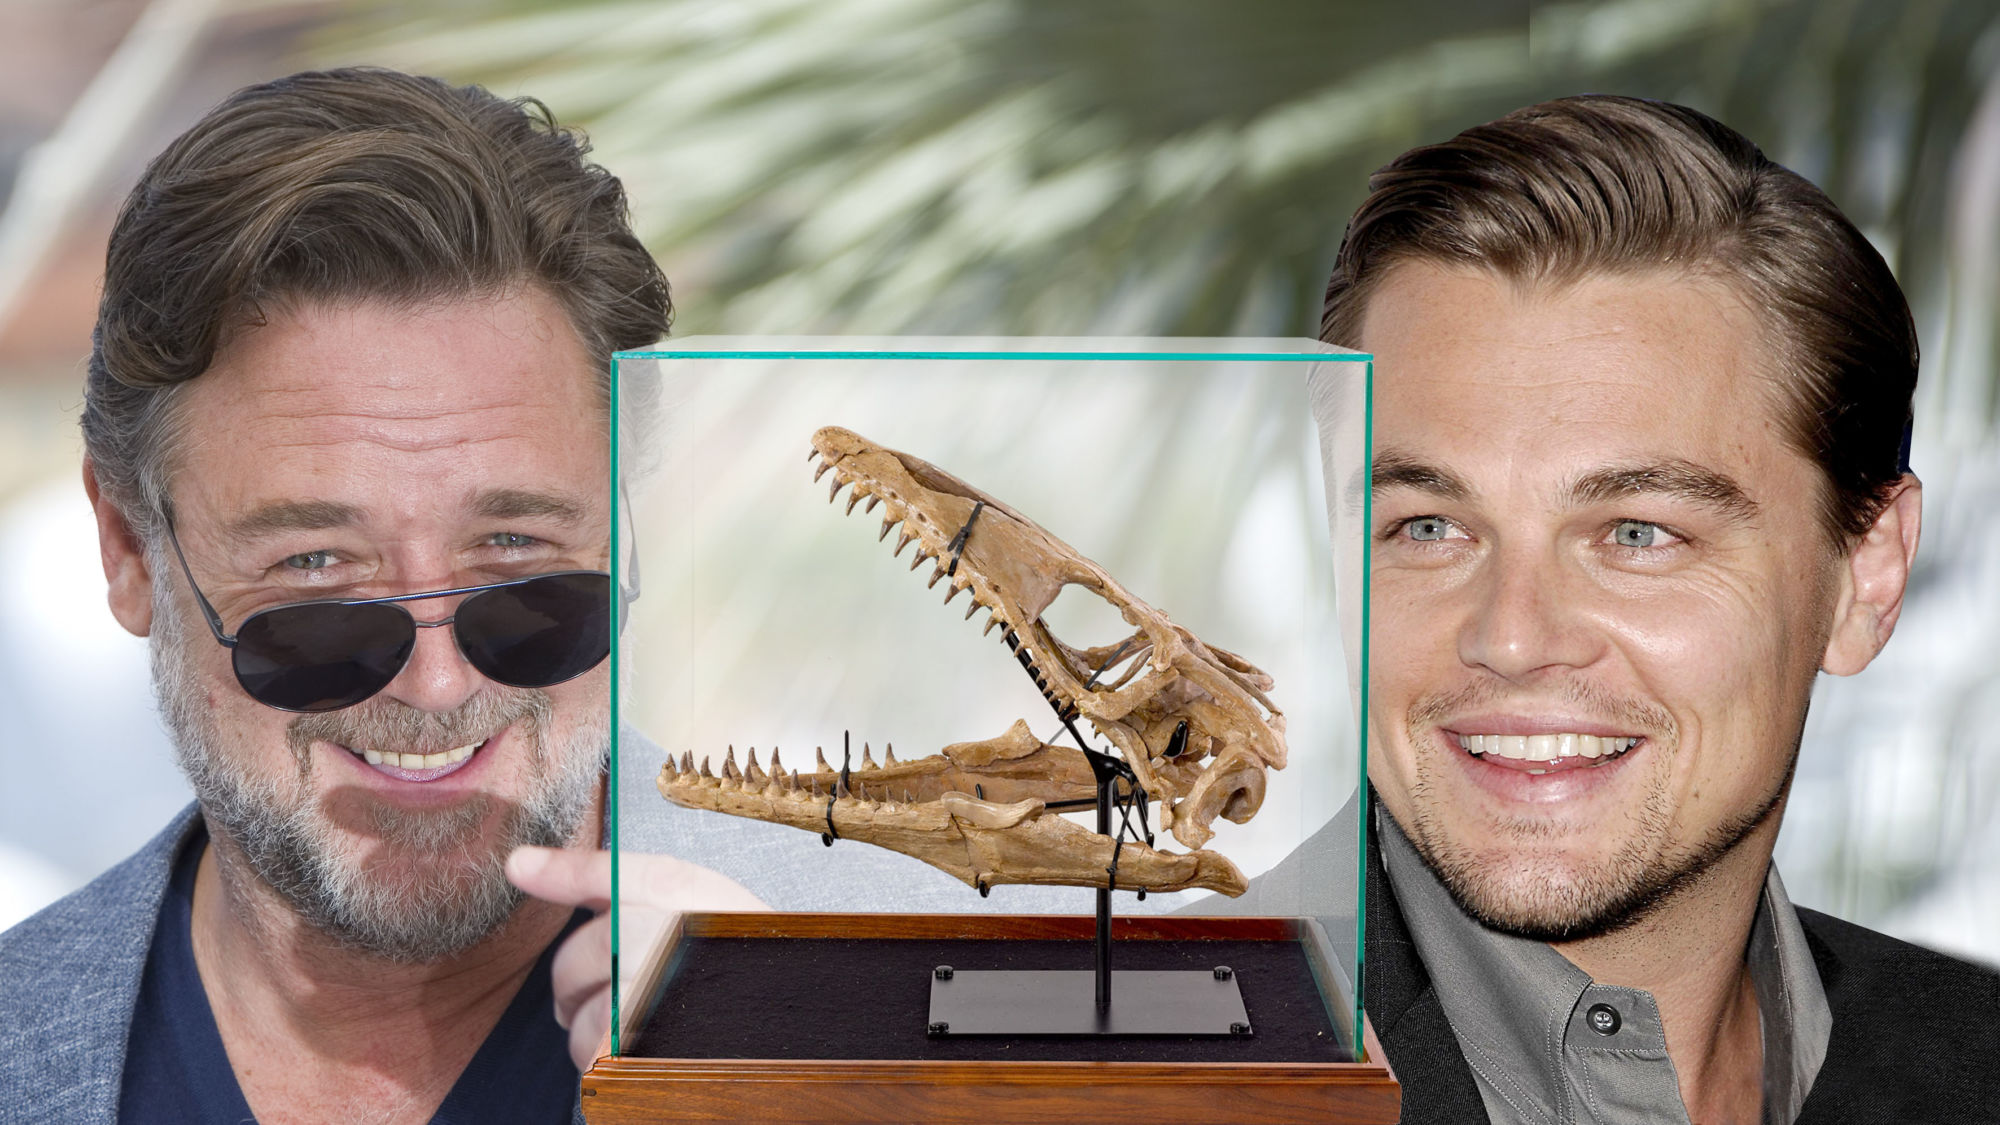 That Time Leonardo DiCaprio Sold a Dinosaur Skull to Russell Crowe - Editorial credit Russell Crowe: BAKOUNINE / Shutterstock.com, credit Leonardo DiCaprio: Everett Collection / Shutterstock.com